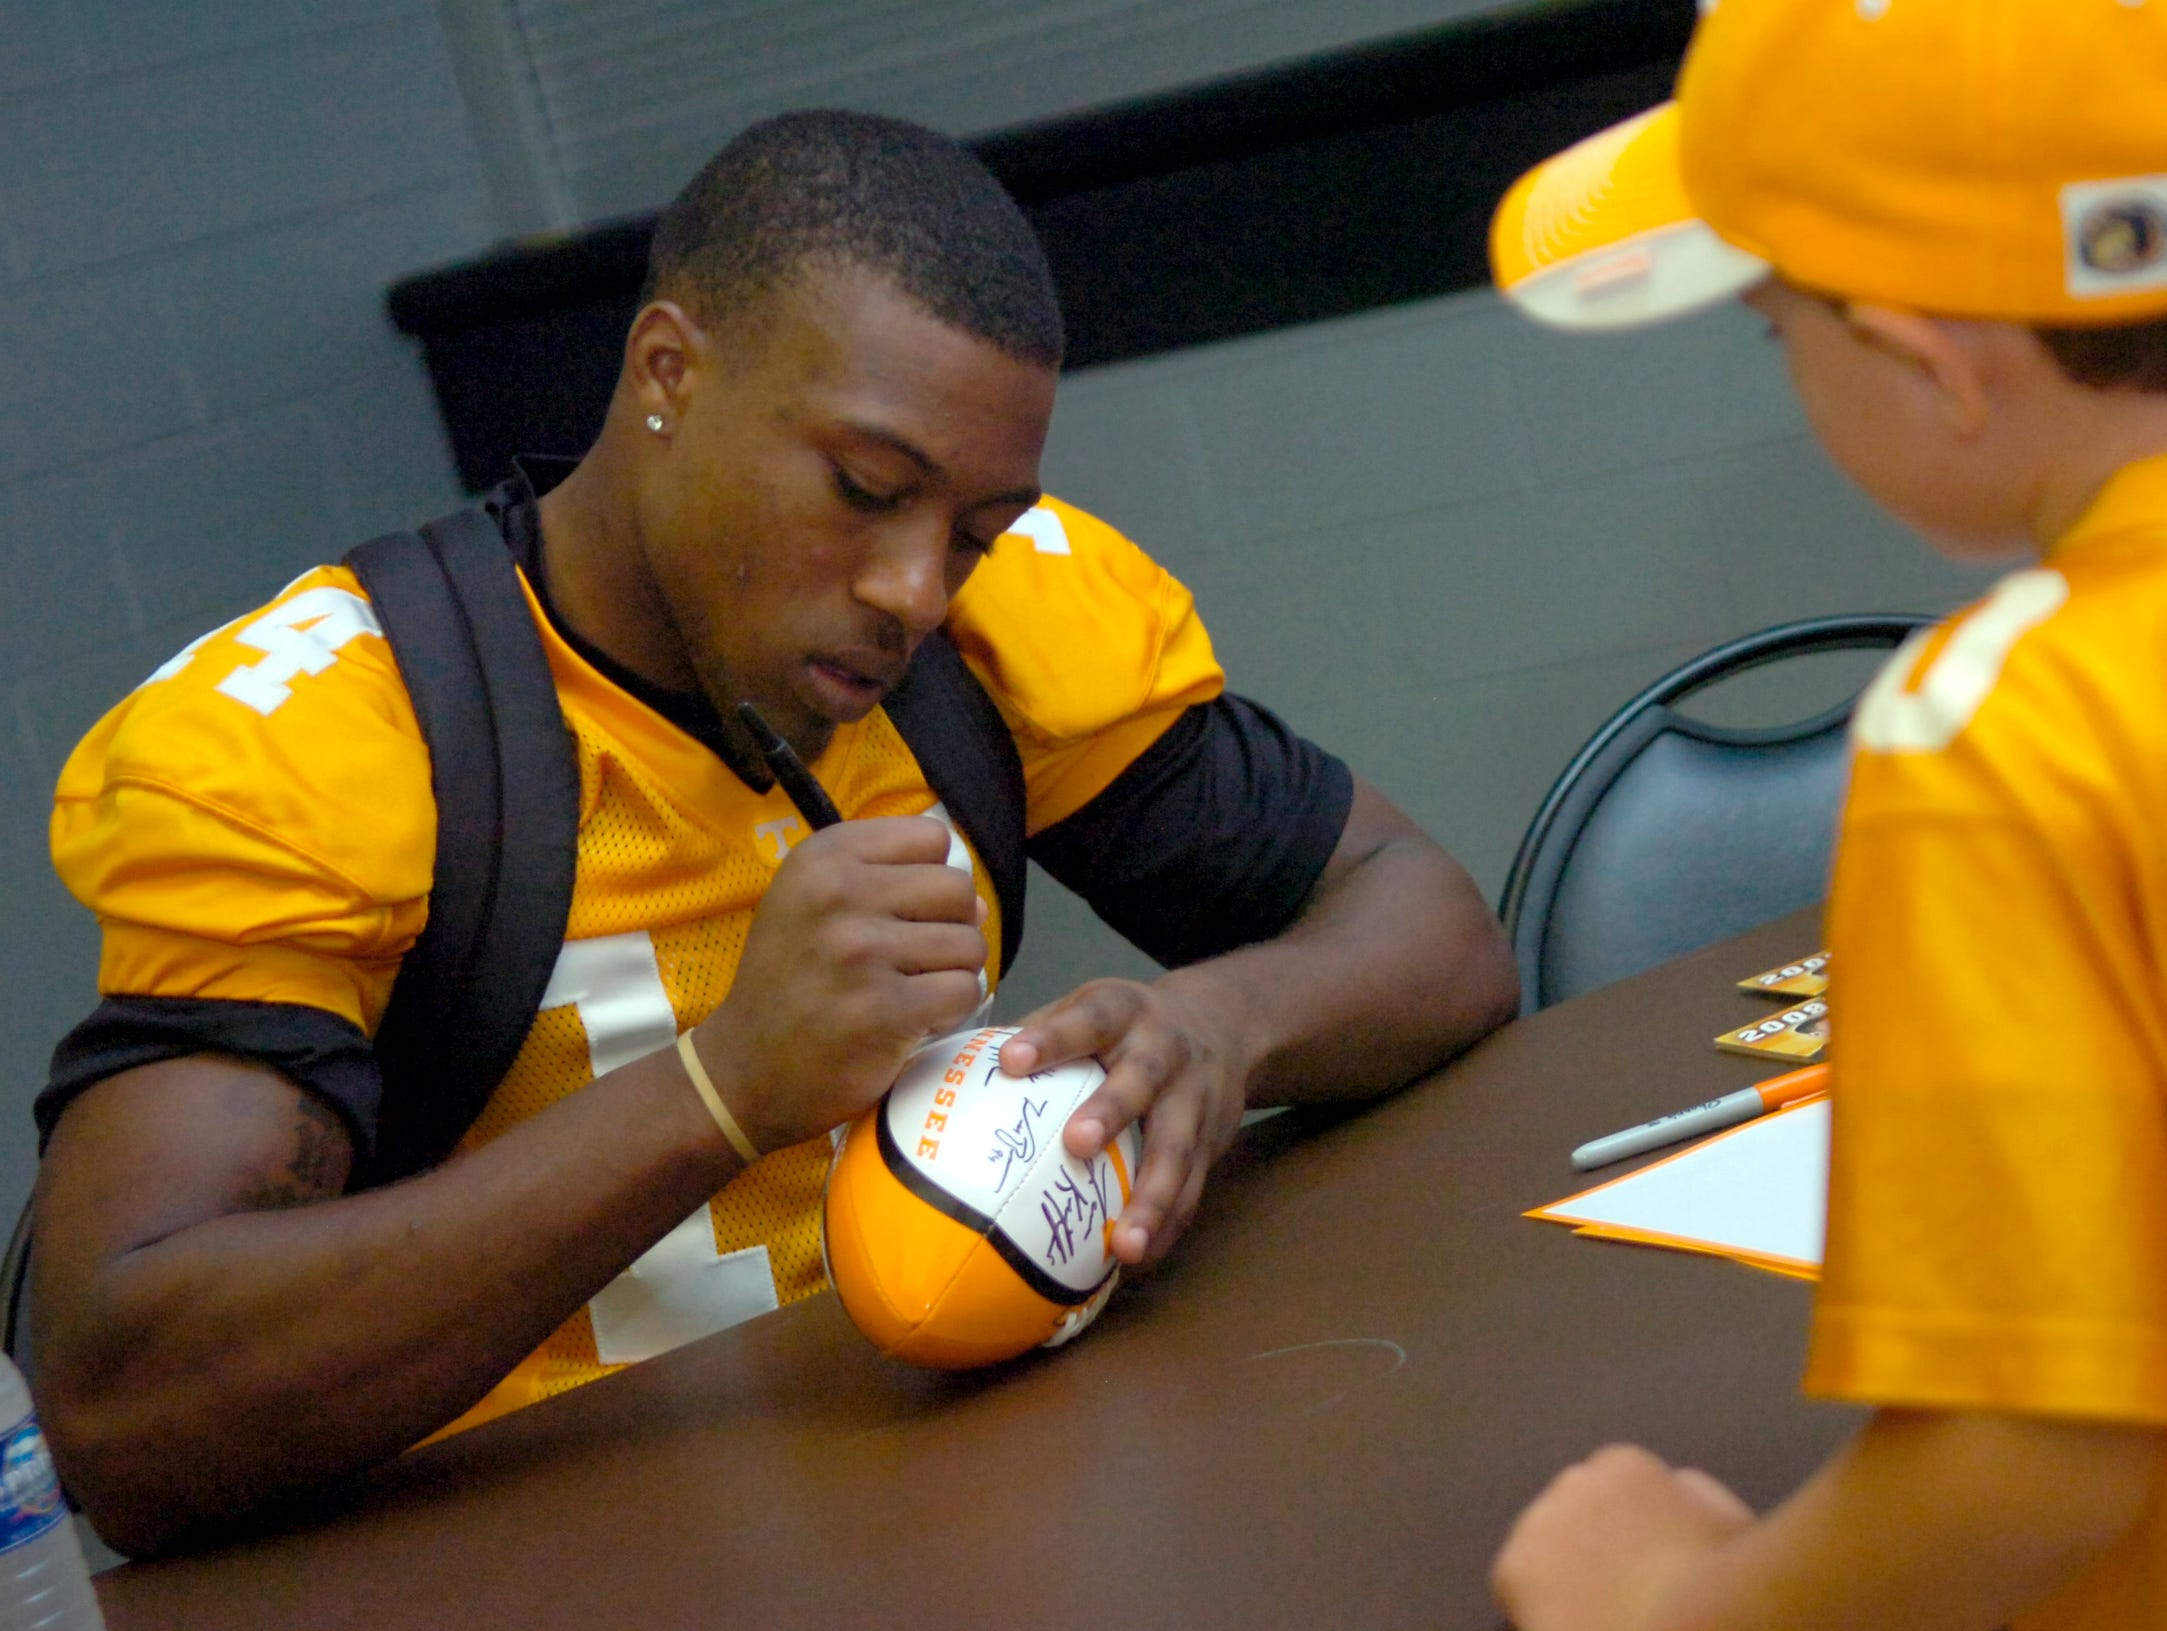 UT player Eric Berry signs autographs at the 2009 Welcome Back Barbeque held at Thompson Boling Arena on Friday night for head football coach Lane Kiffin and selected players.